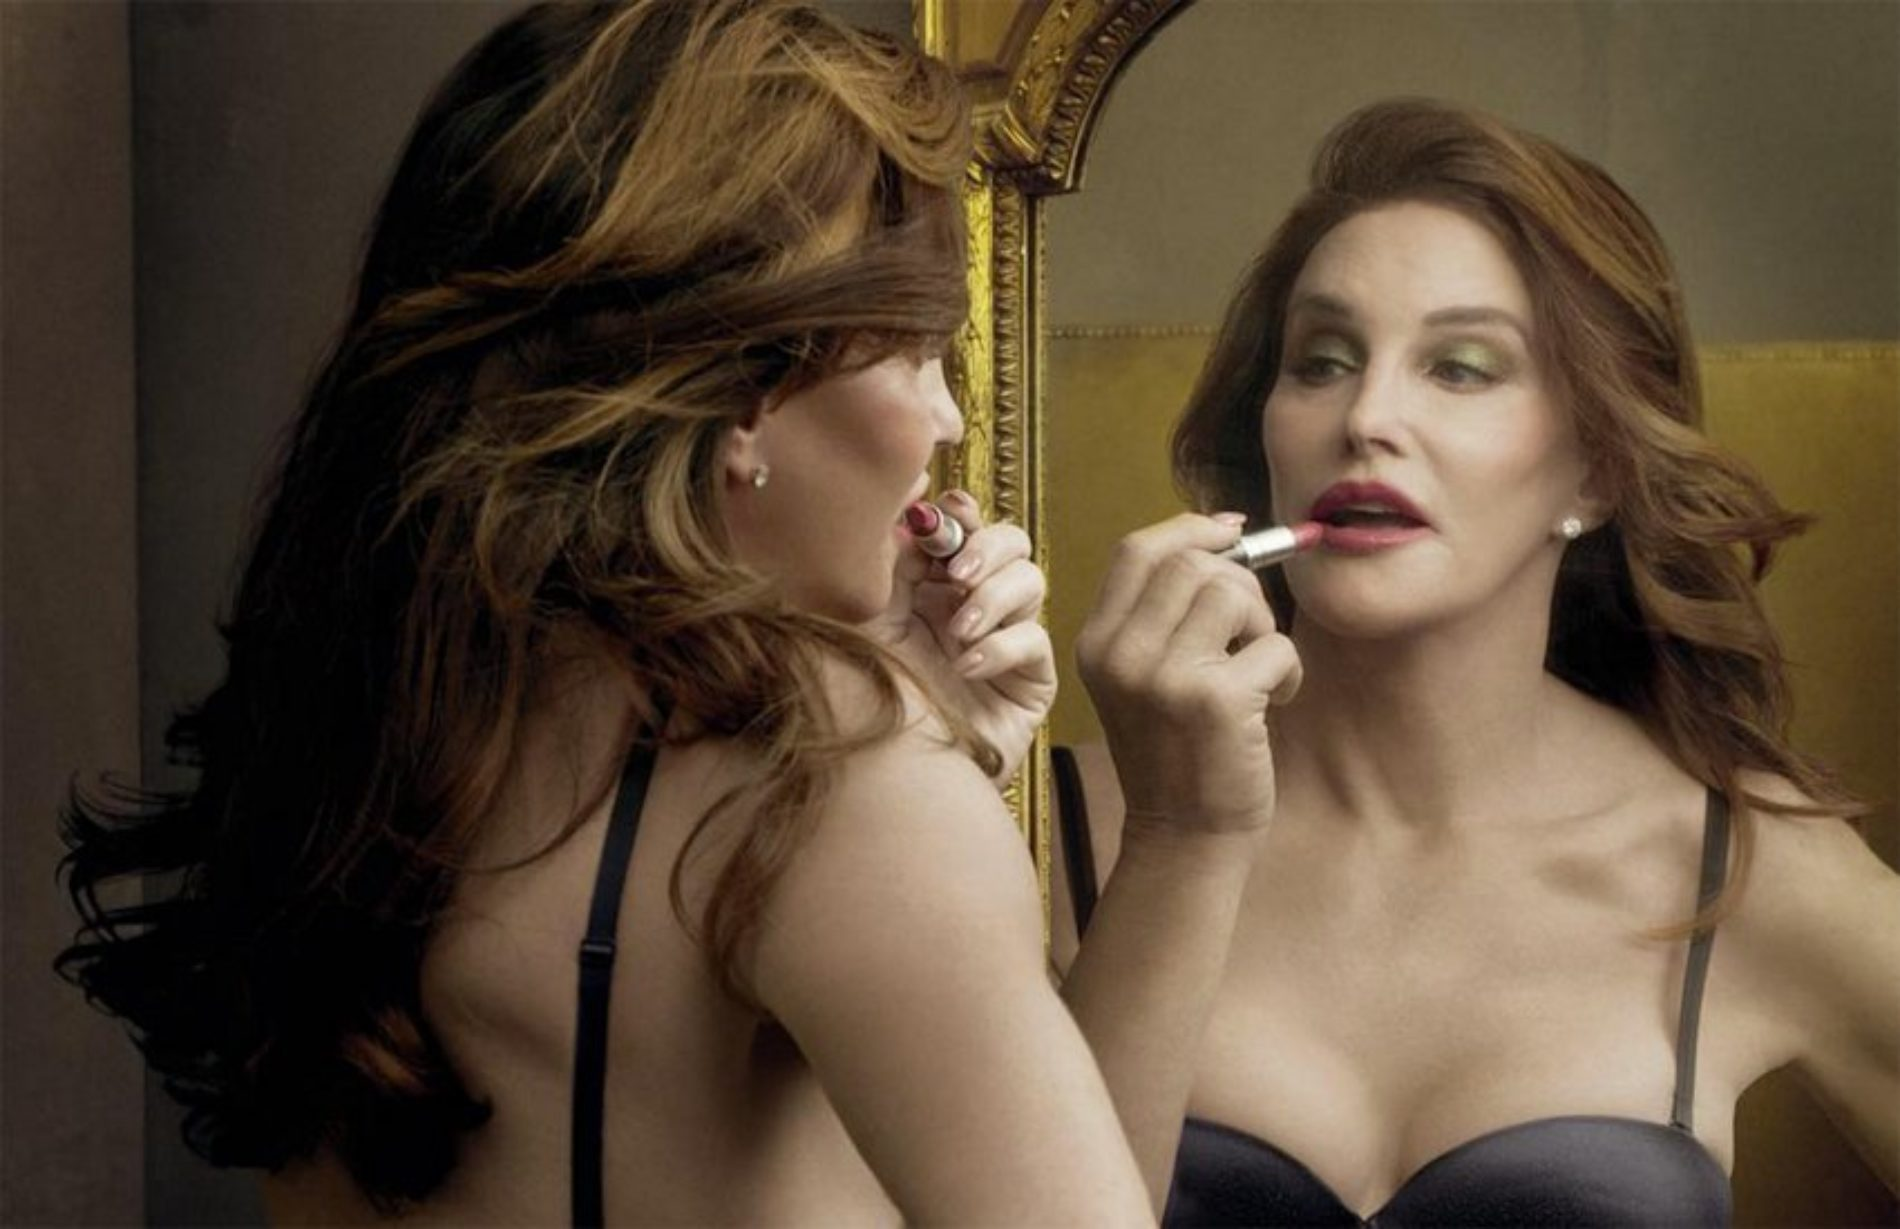 What has led Caitlyn Jenner down the path from icon to outcast?